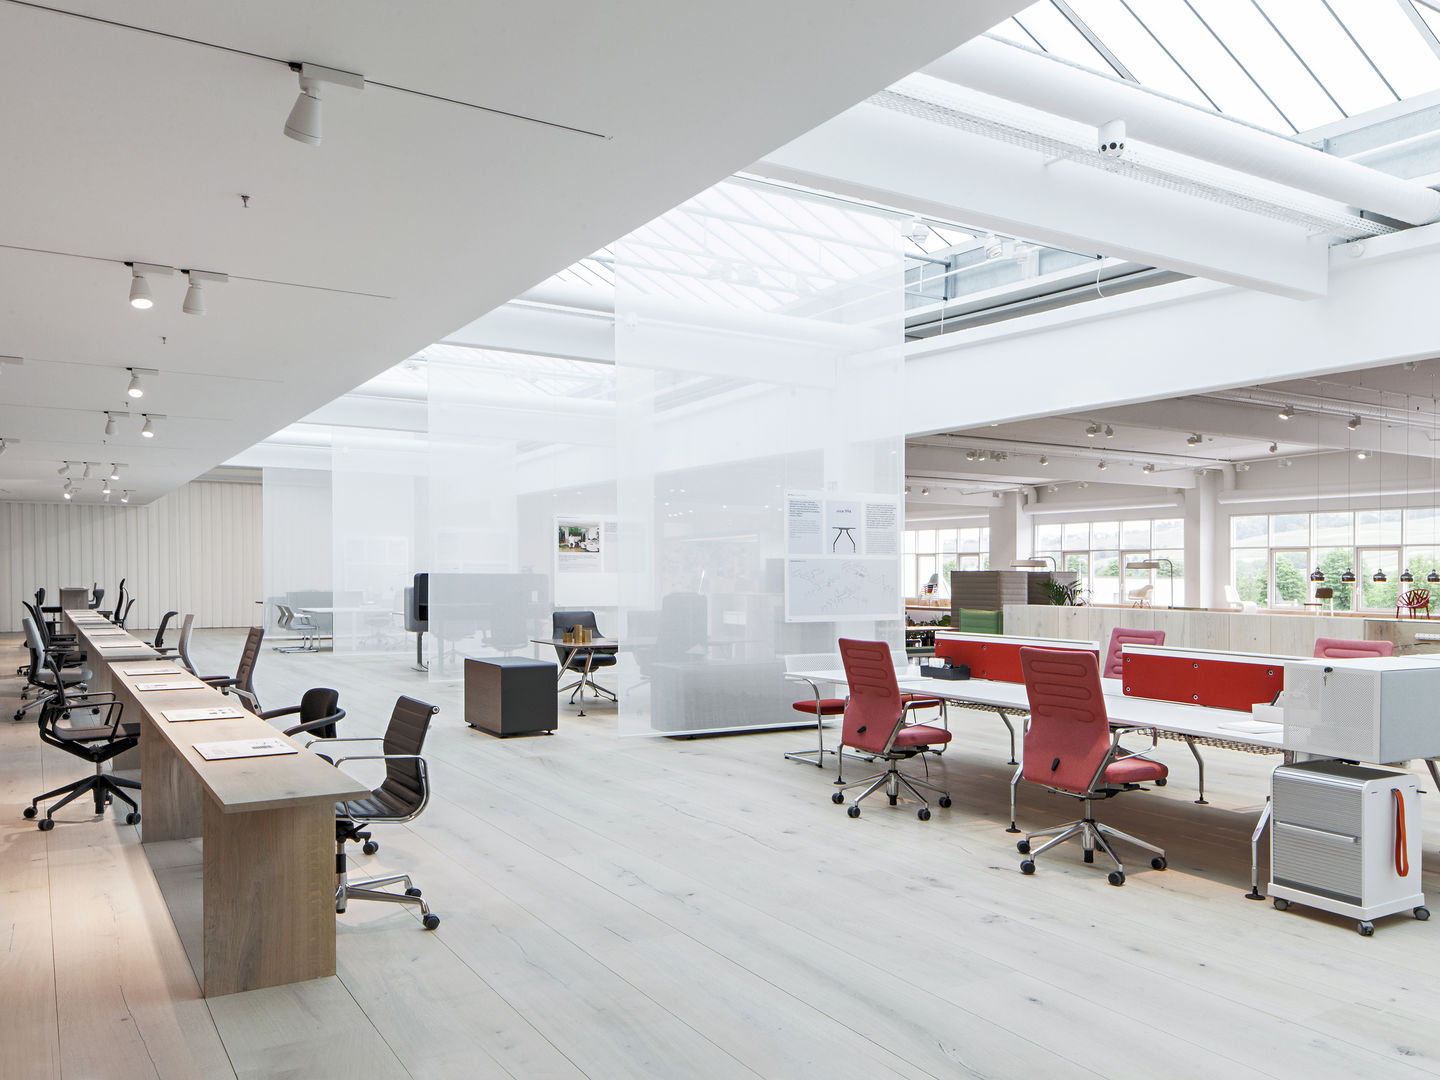 vitra citizen office. The Workspace Houses A Comprehensive Overview Of Vitra\u0027s Furniture For Offices And Public Spaces, Is Dynamic Planning Learning Tool These Vitra Citizen Office T